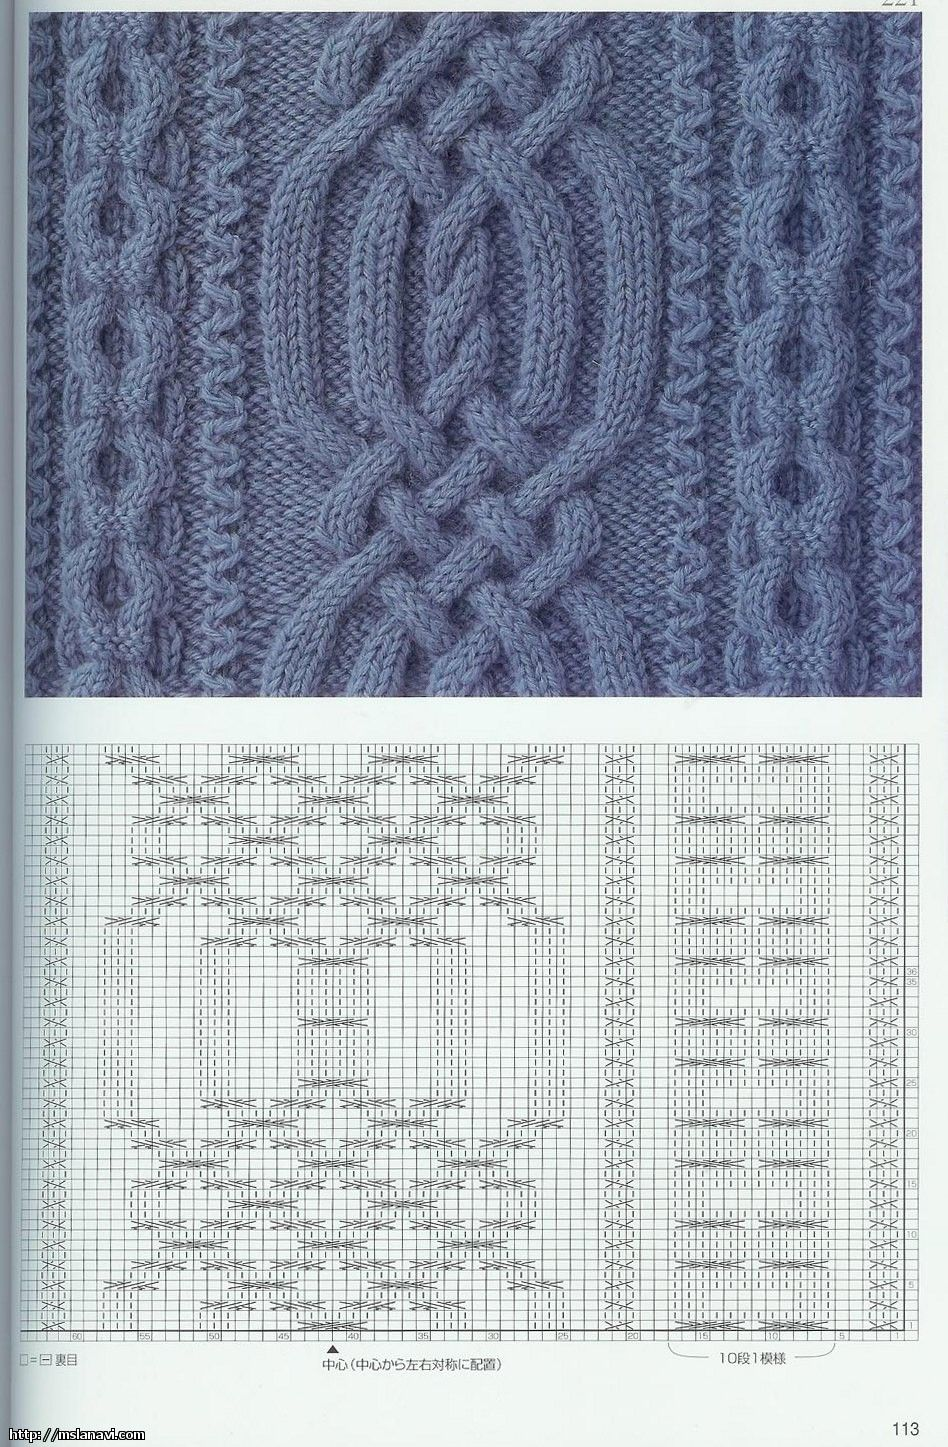 Pin by Sylvia Yarker on Knitting | Pinterest | Ganchillo, Croché and ...